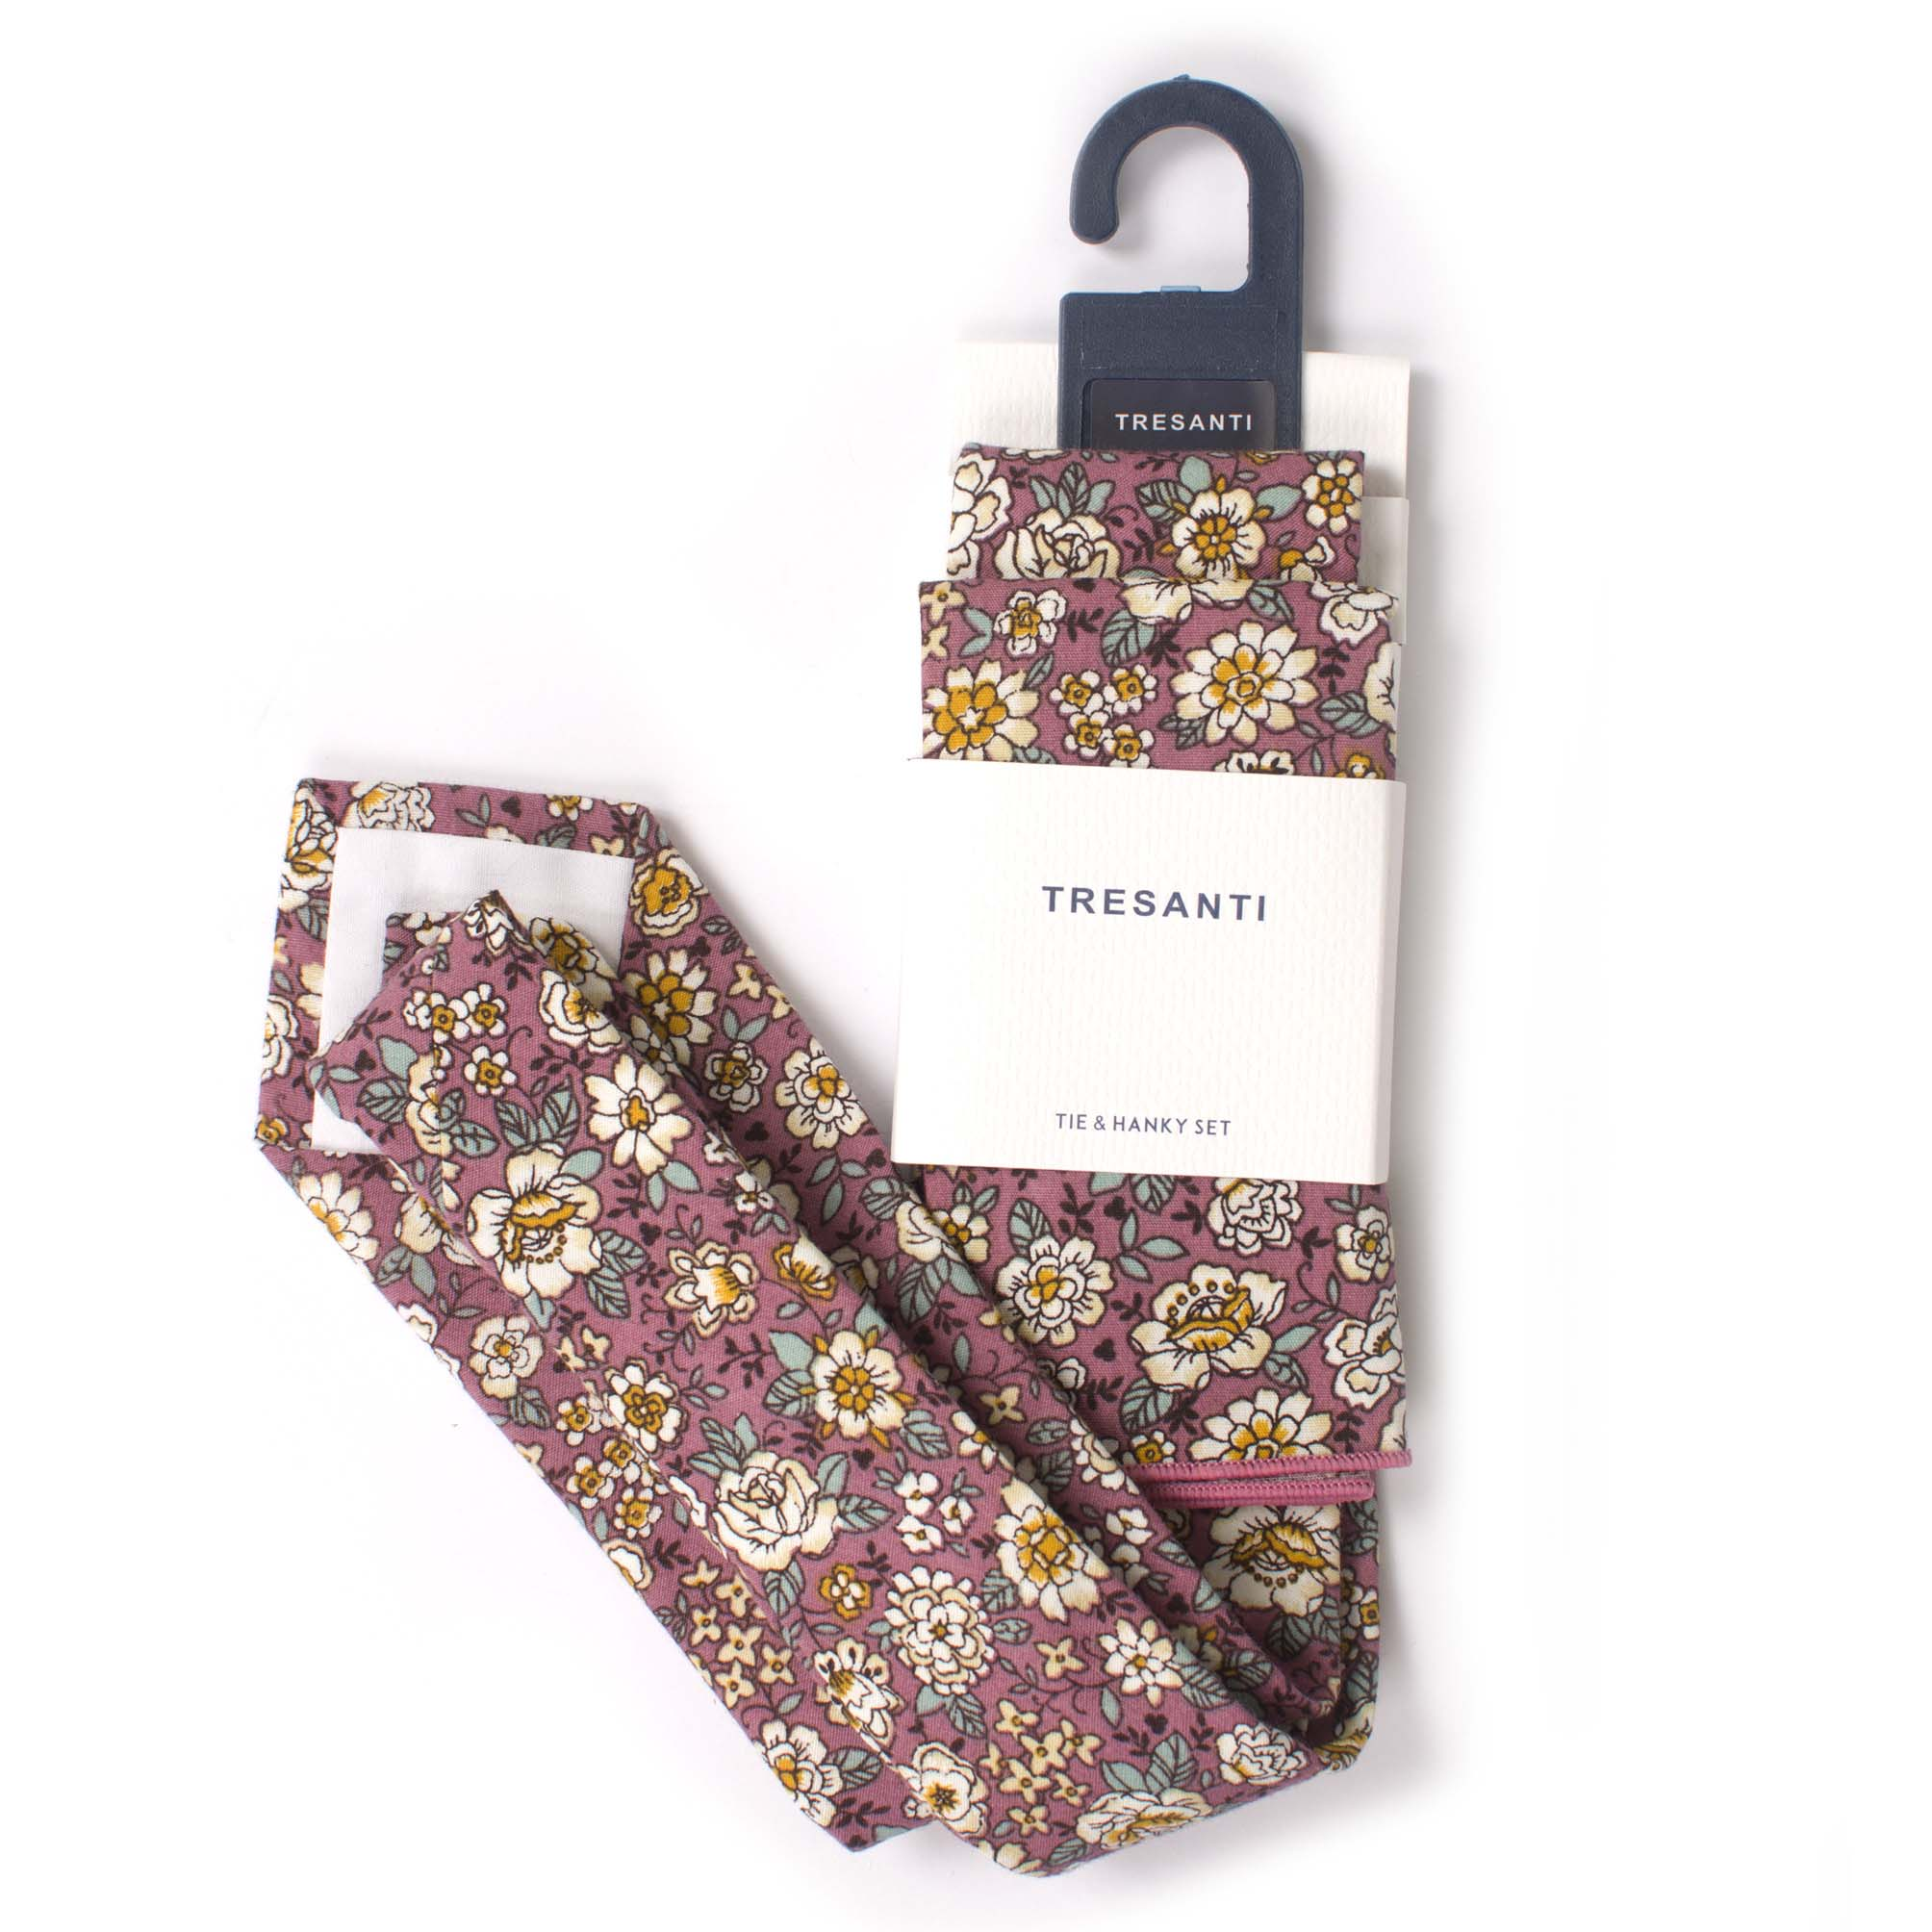 Cotton set tie & hanky  flower design